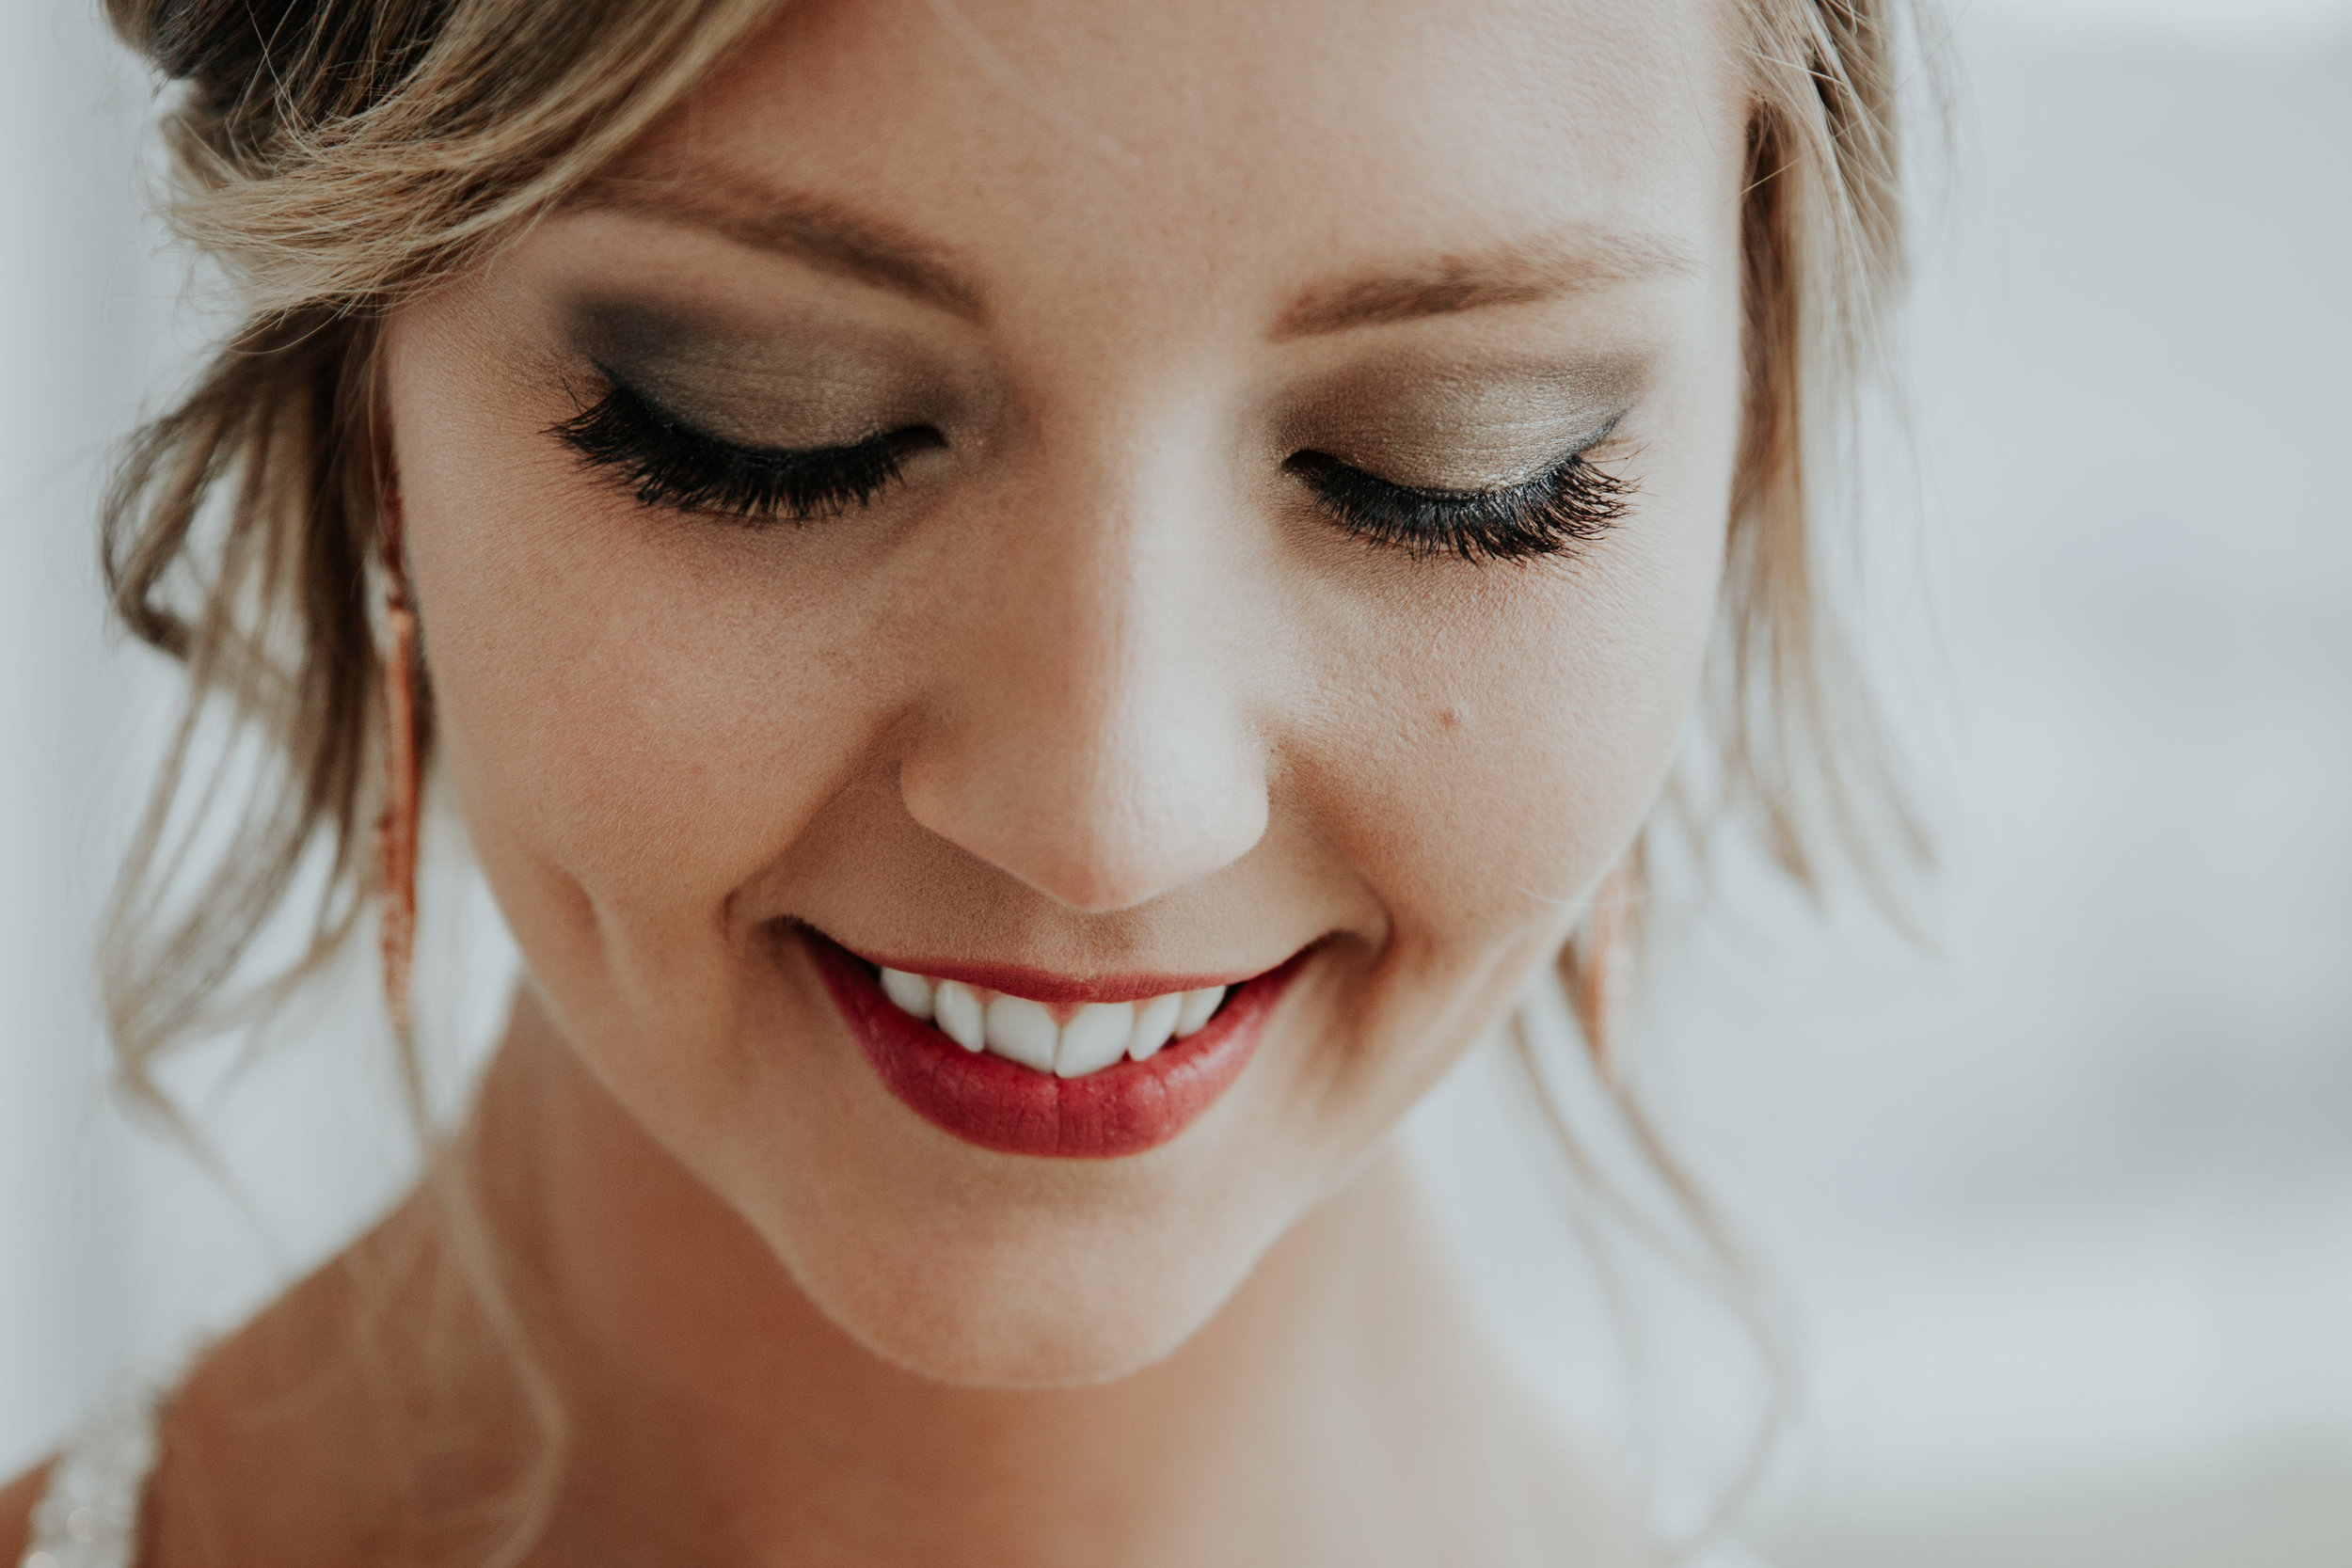 Bridal Portraits | Be Images